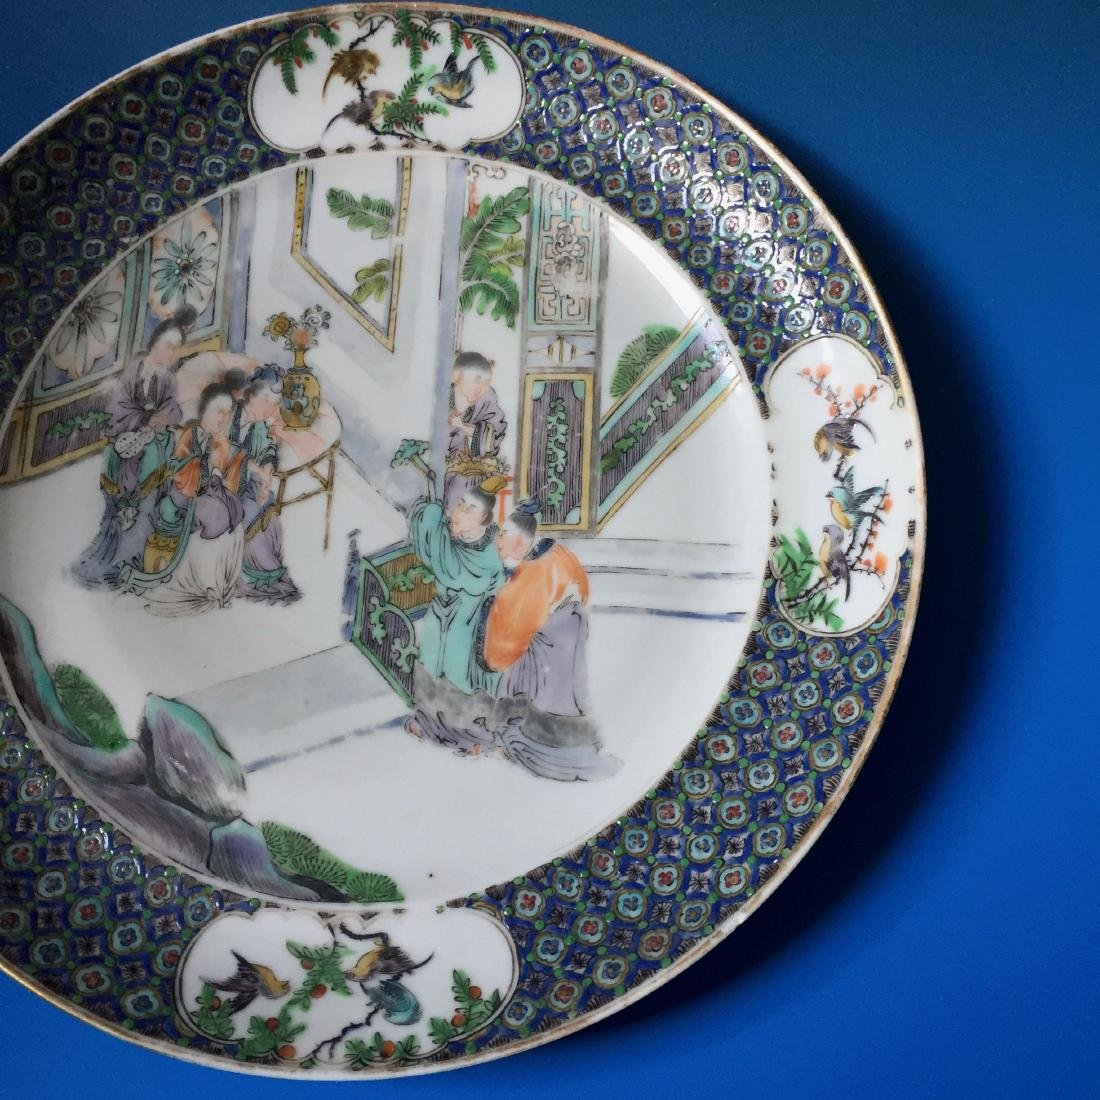 A BEAUTIFUL CHINESE ANTIQUE PLATE,19C. - 3